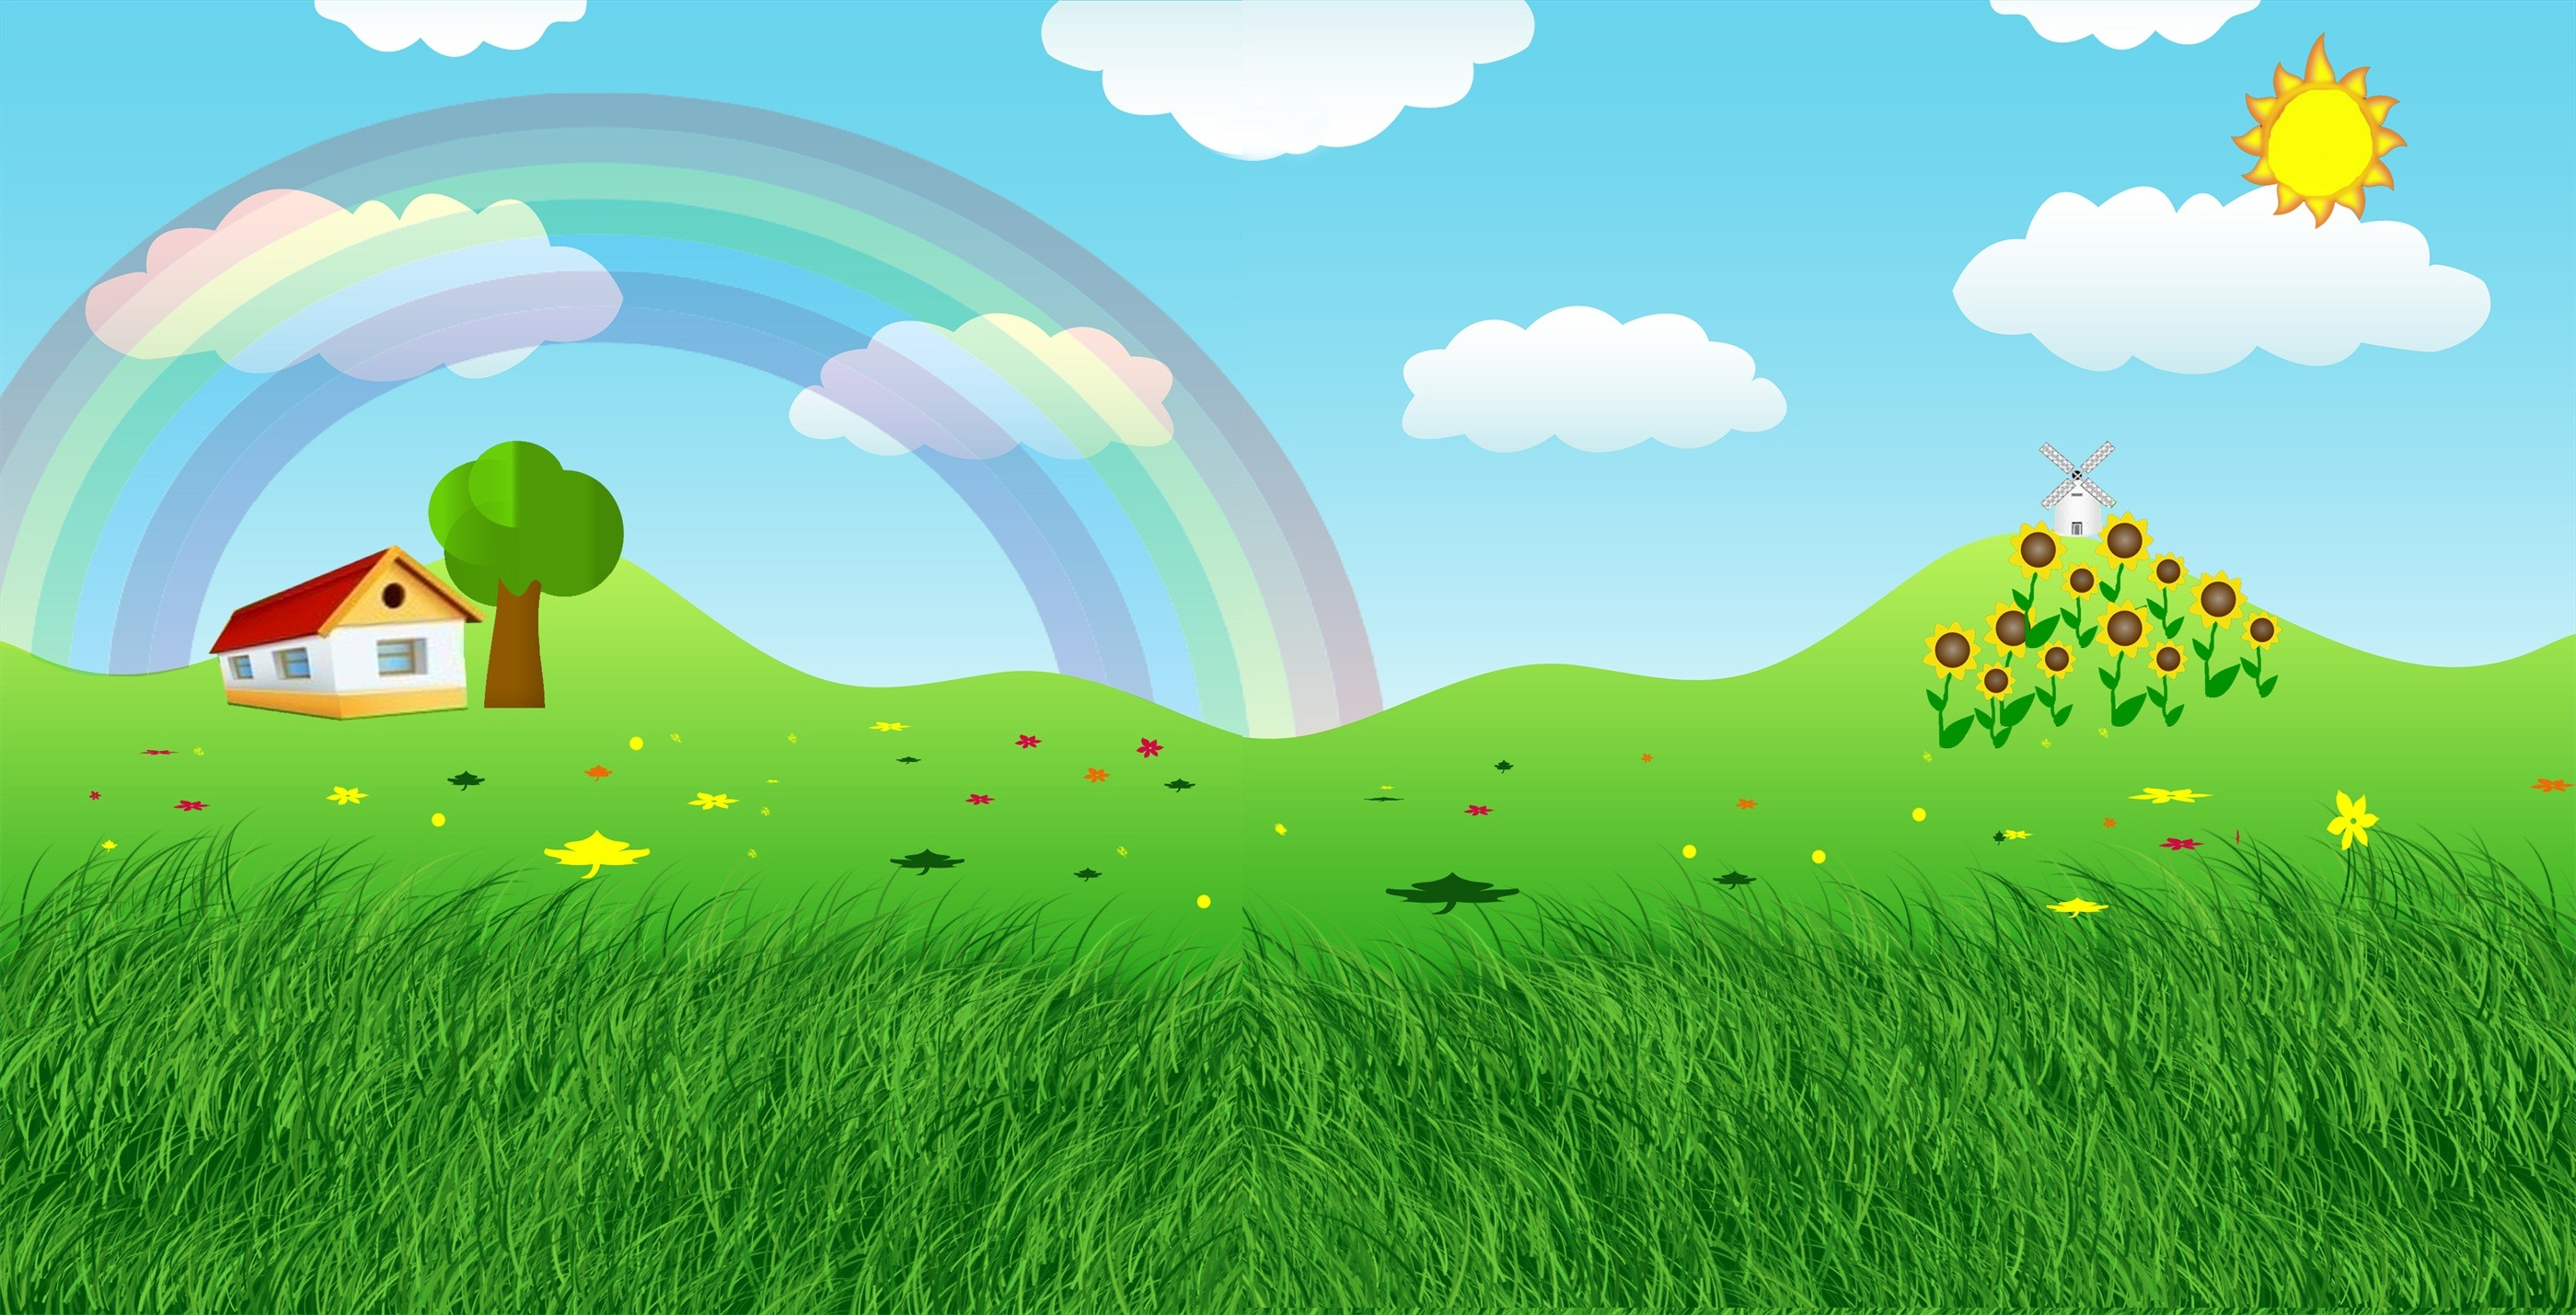 Free 3d Dinosaur Wallpaper Kids Background 183 ① Download Free Amazing Hd Wallpapers For